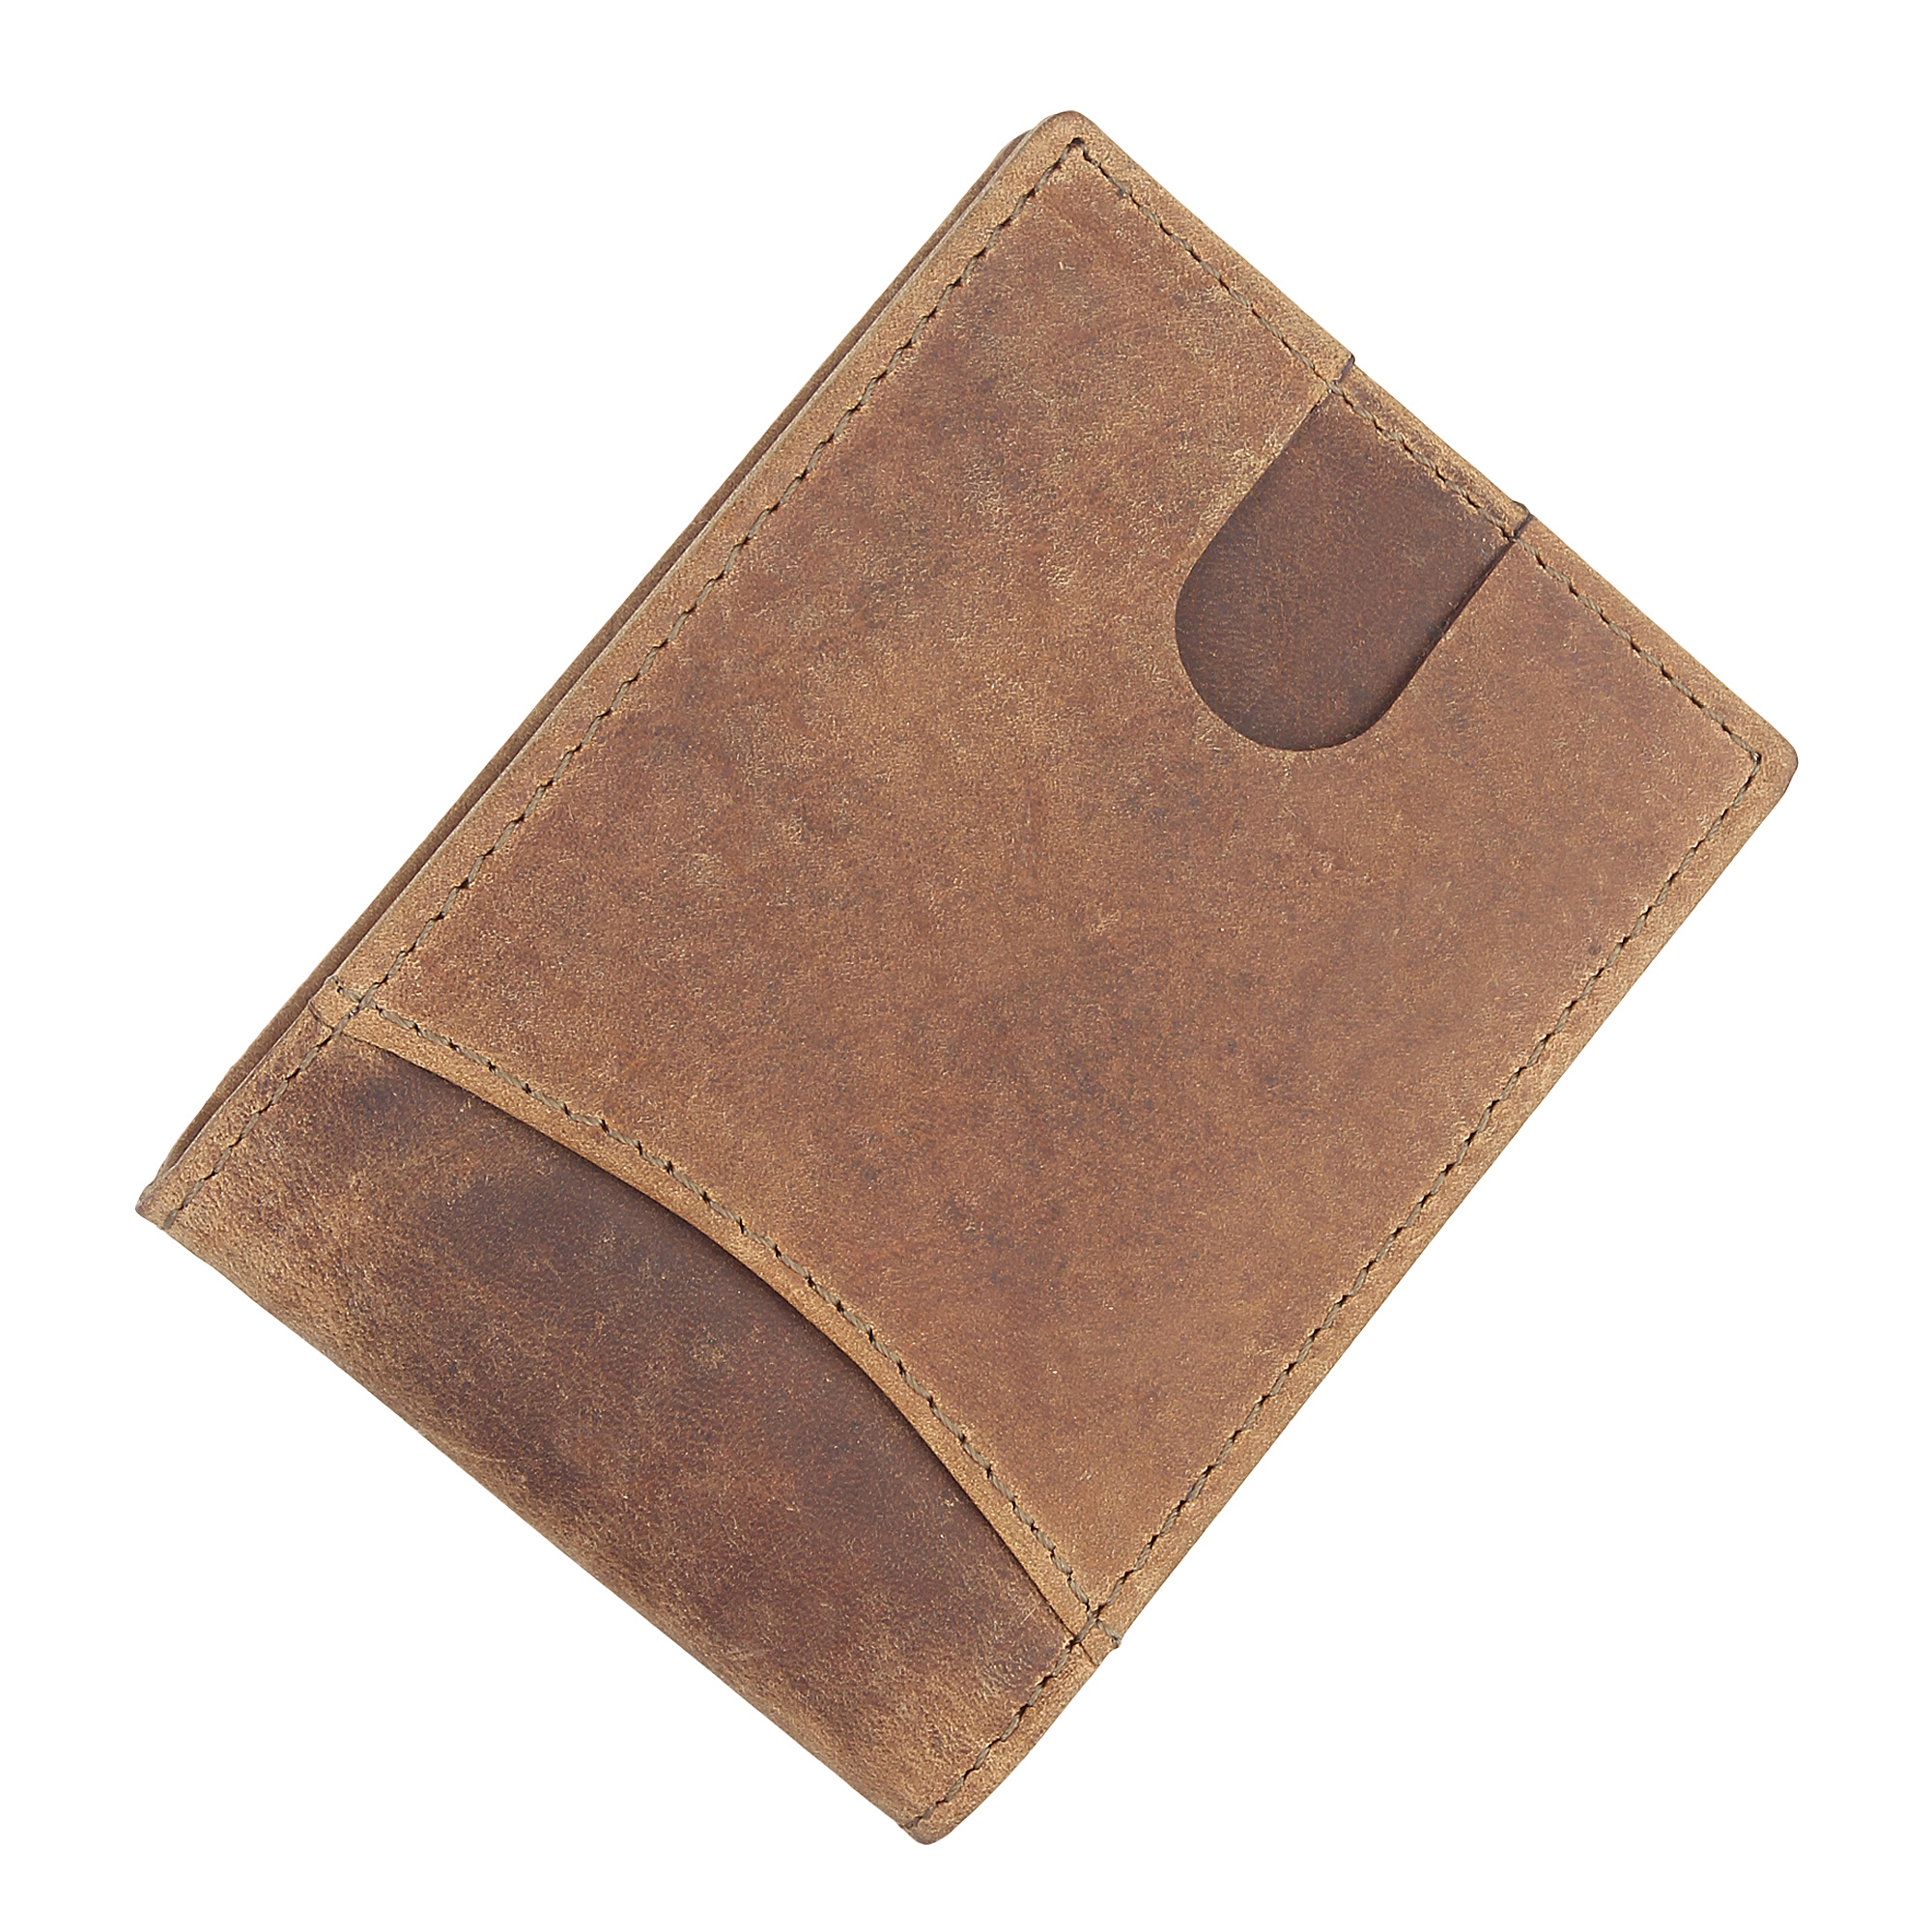 Leather Money Clip Wallet Manufacturers In Bangalore, Money Clip Wallet Suppliers In Bangalore, Money Clip Wallet Wholesalers In Bangalore, Money Clip Wallet Traders In Bangalore